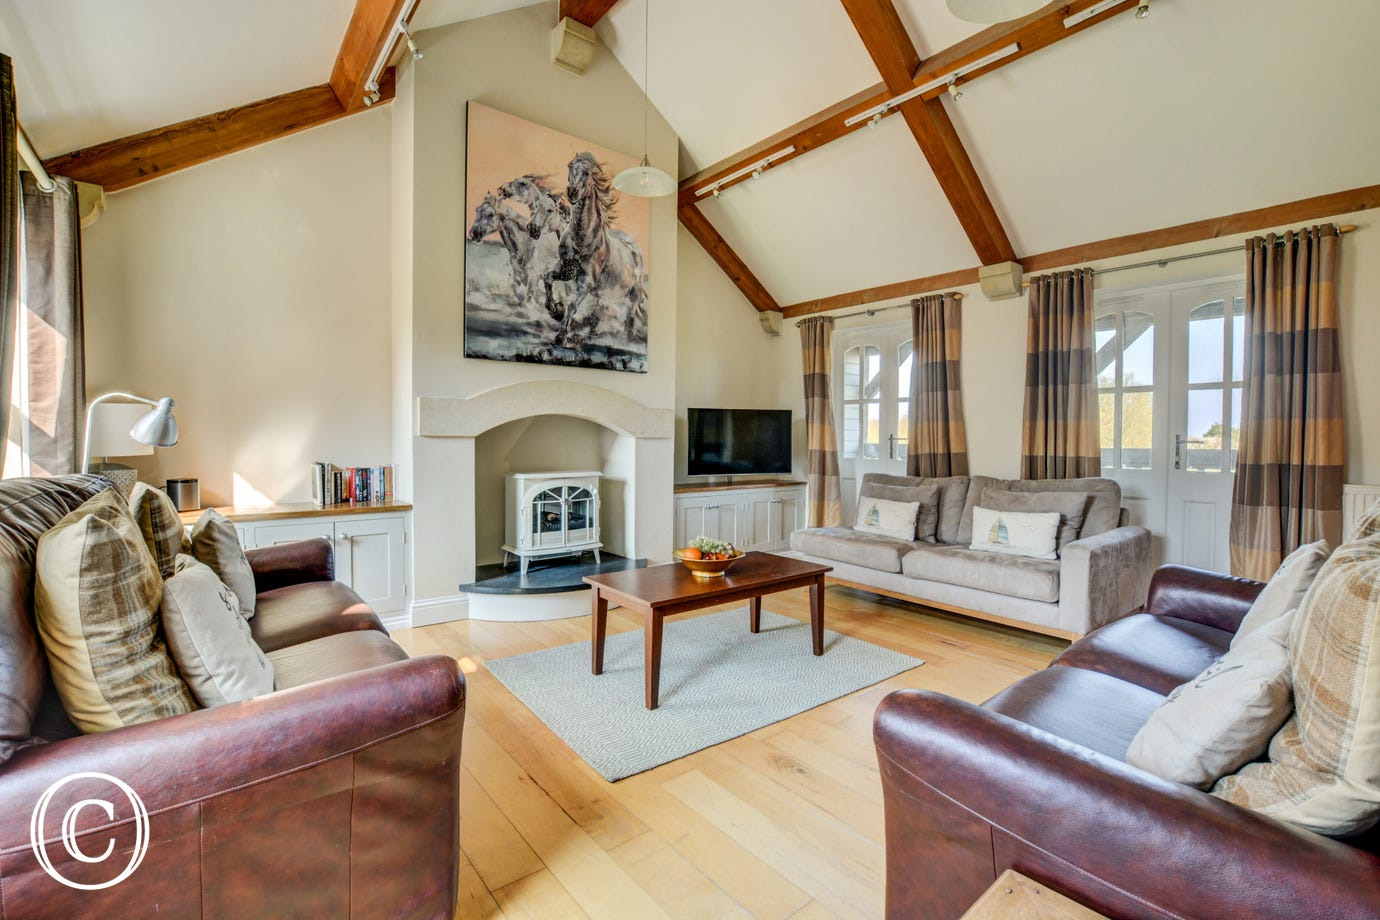 Spacious sitting room with a verandah to take full advantage of the uninterrupted views towards the sea and over Thornham marshes